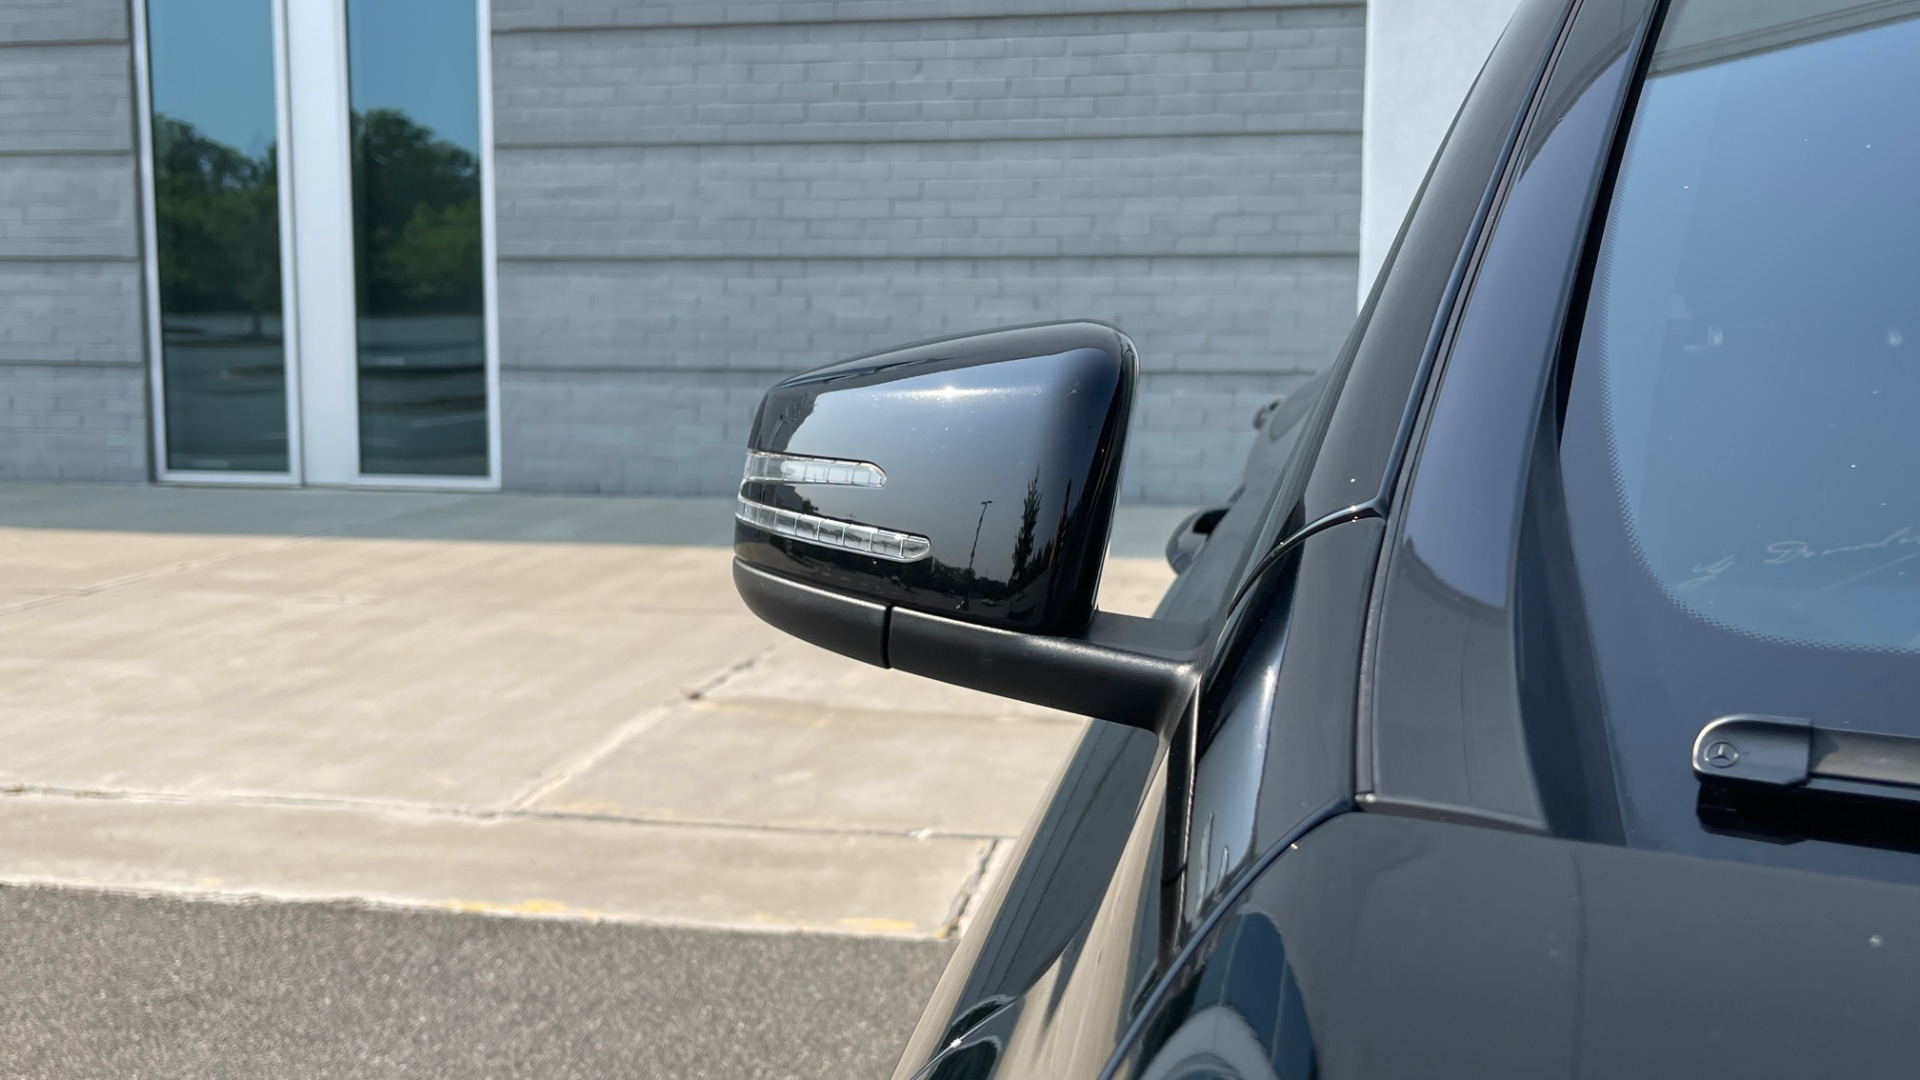 Used 2018 Mercedes-Benz GLA 250 SUV / GARMIN MAP PILOT / 18IN WHEELS / REARVIEW for sale $26,995 at Formula Imports in Charlotte NC 28227 15